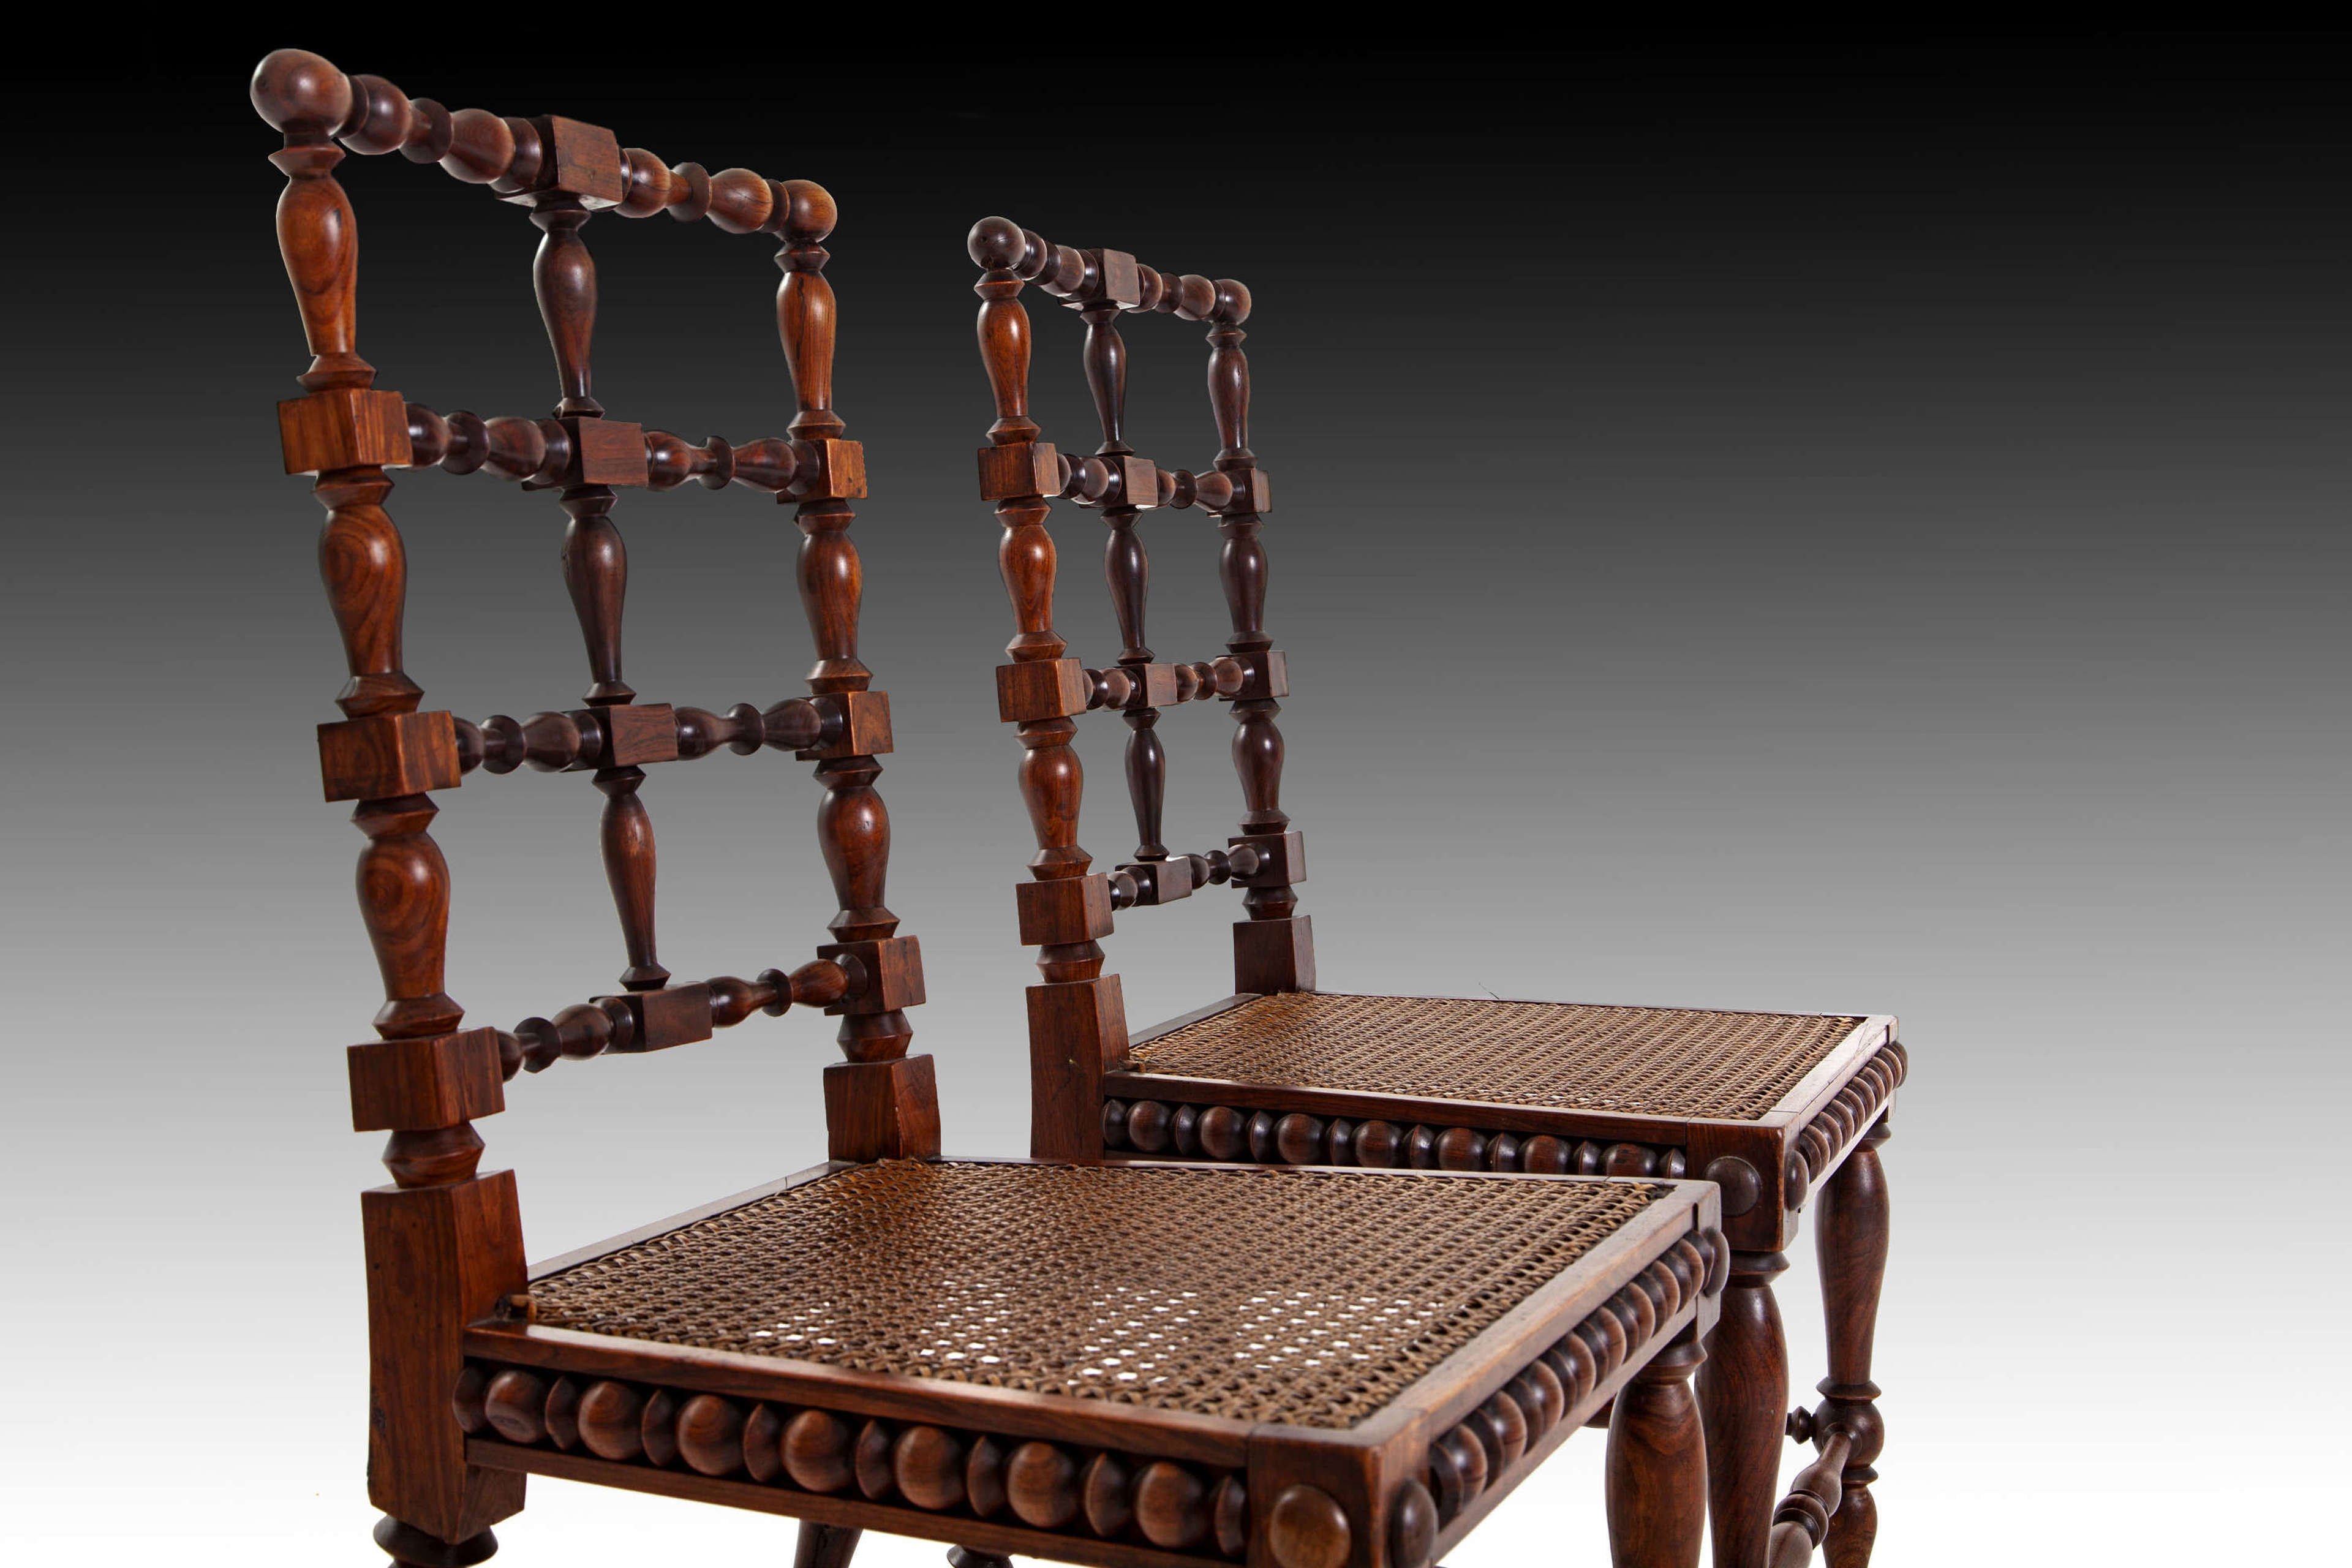 A Pair of turned rosewood side chairs